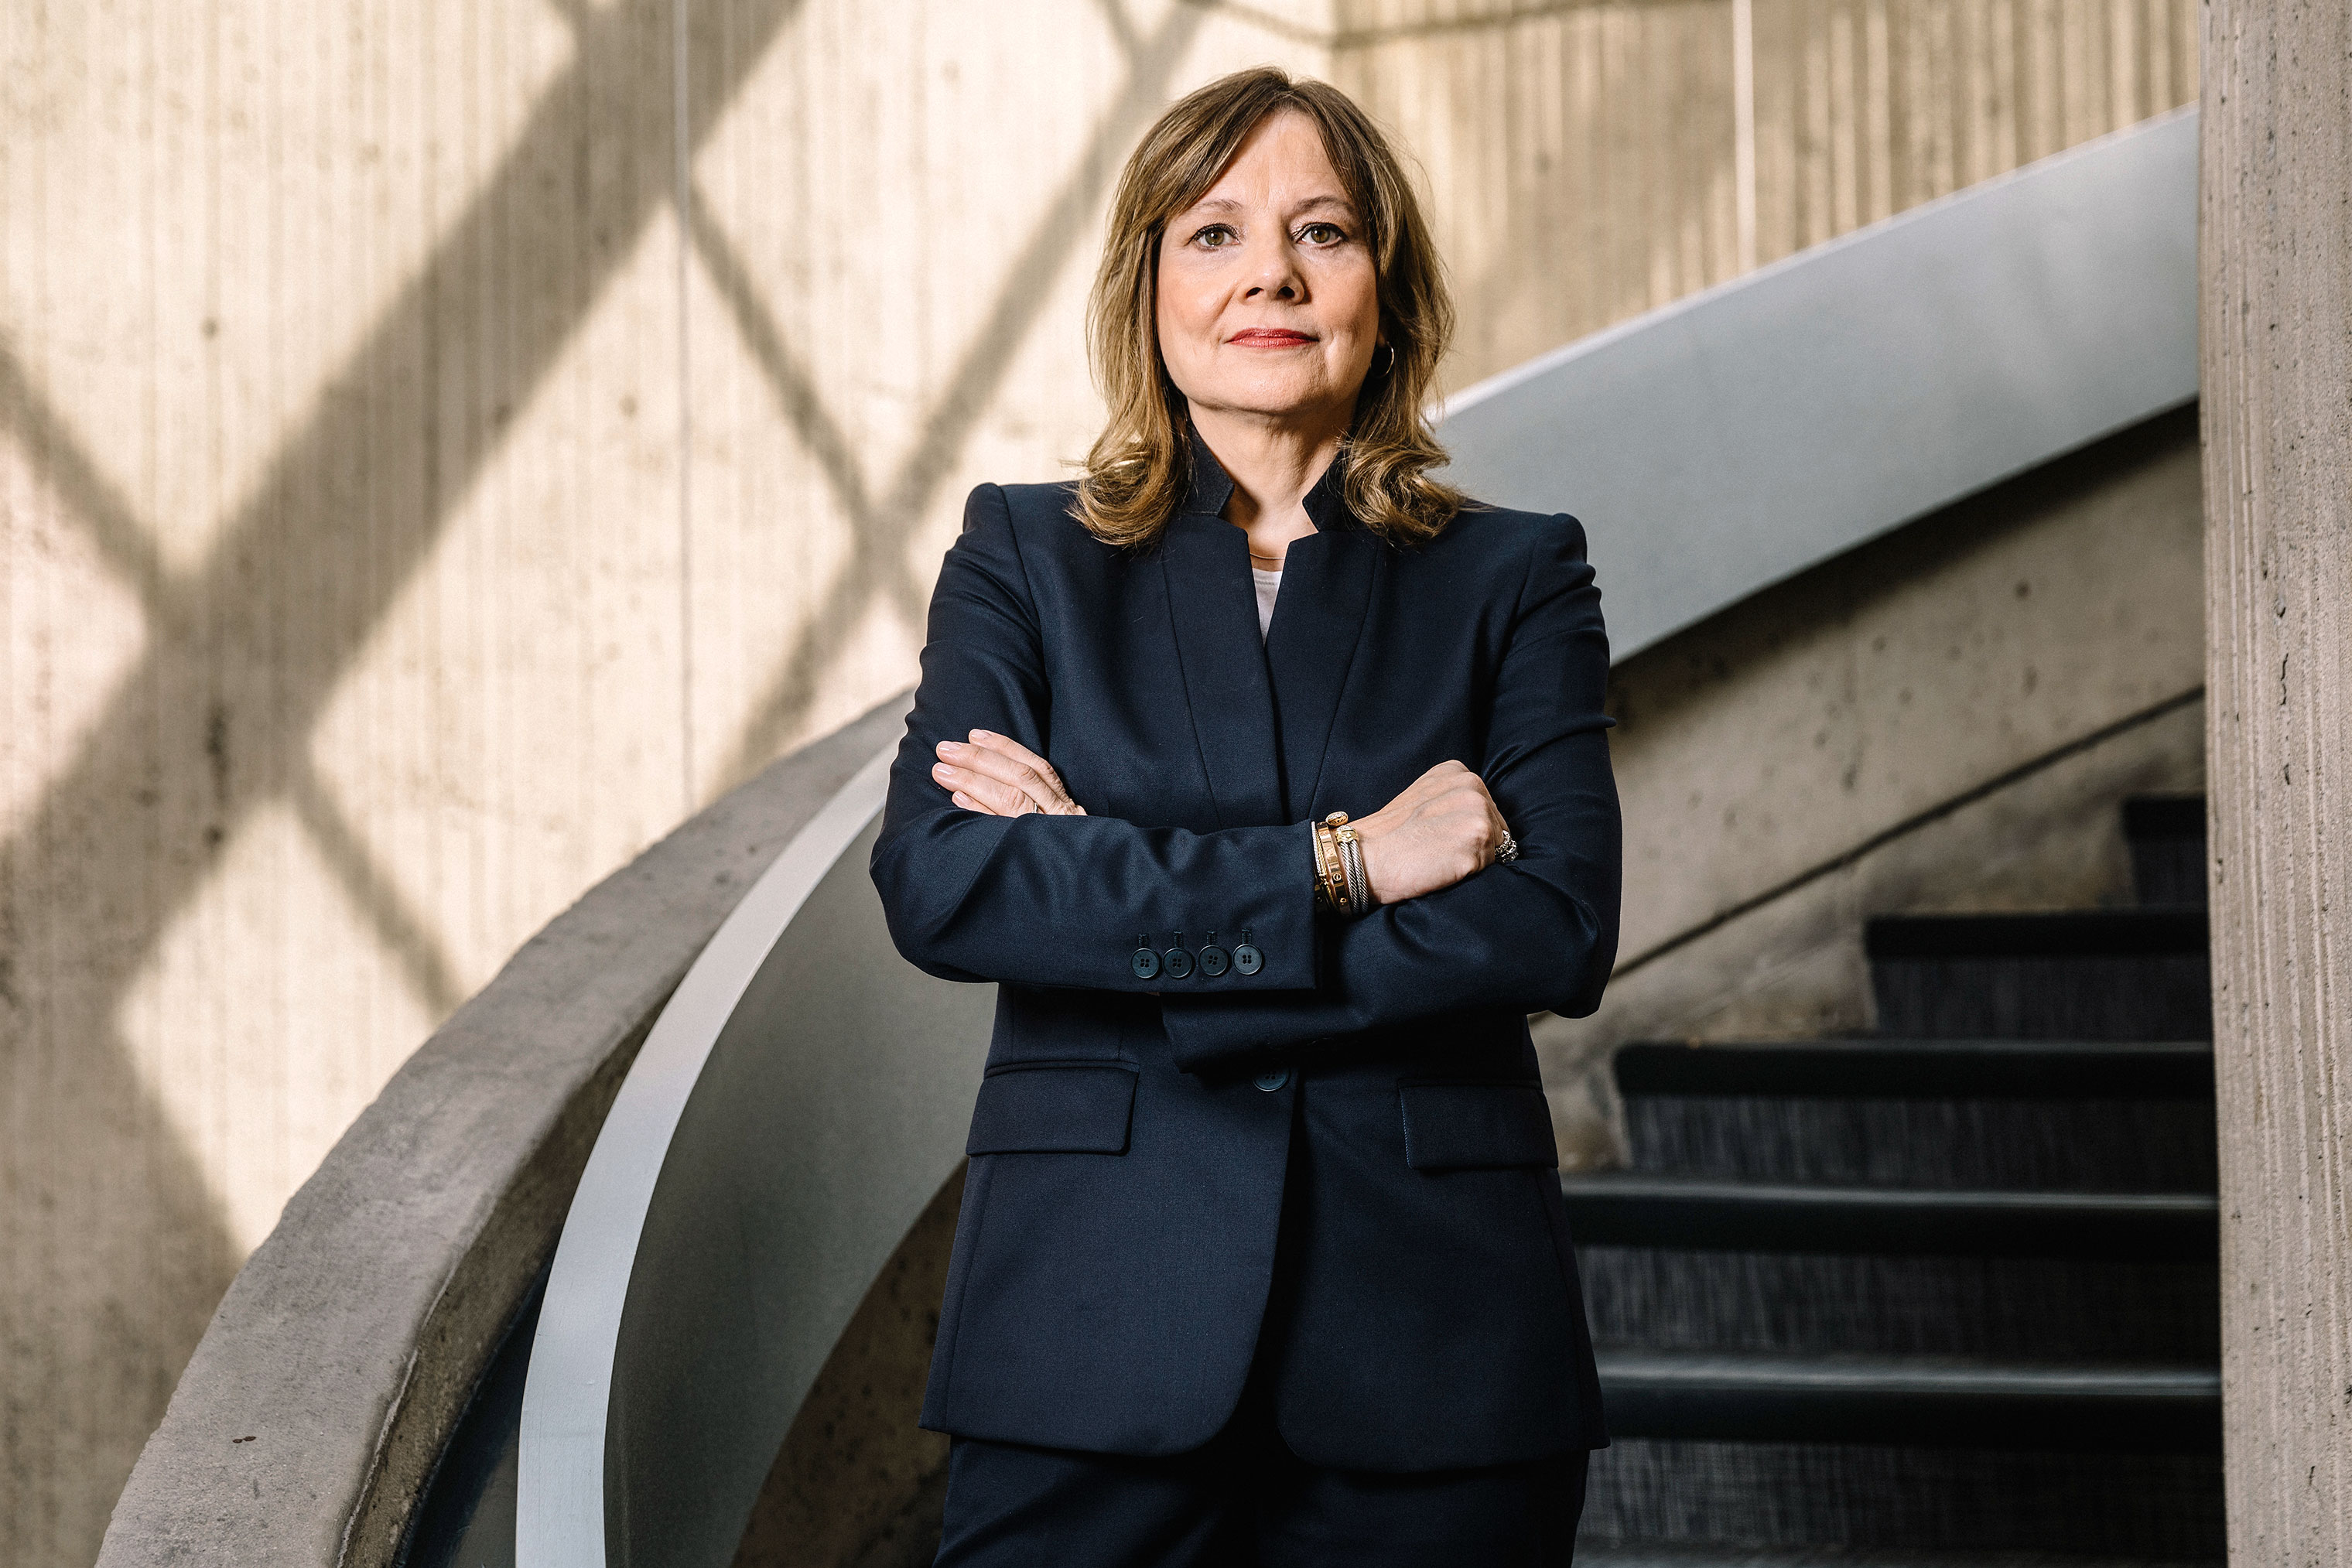 CEO Mary Barra photographed at GM's headquarters in the Renaissance Center in downtown Detroit on May 9, 2018.